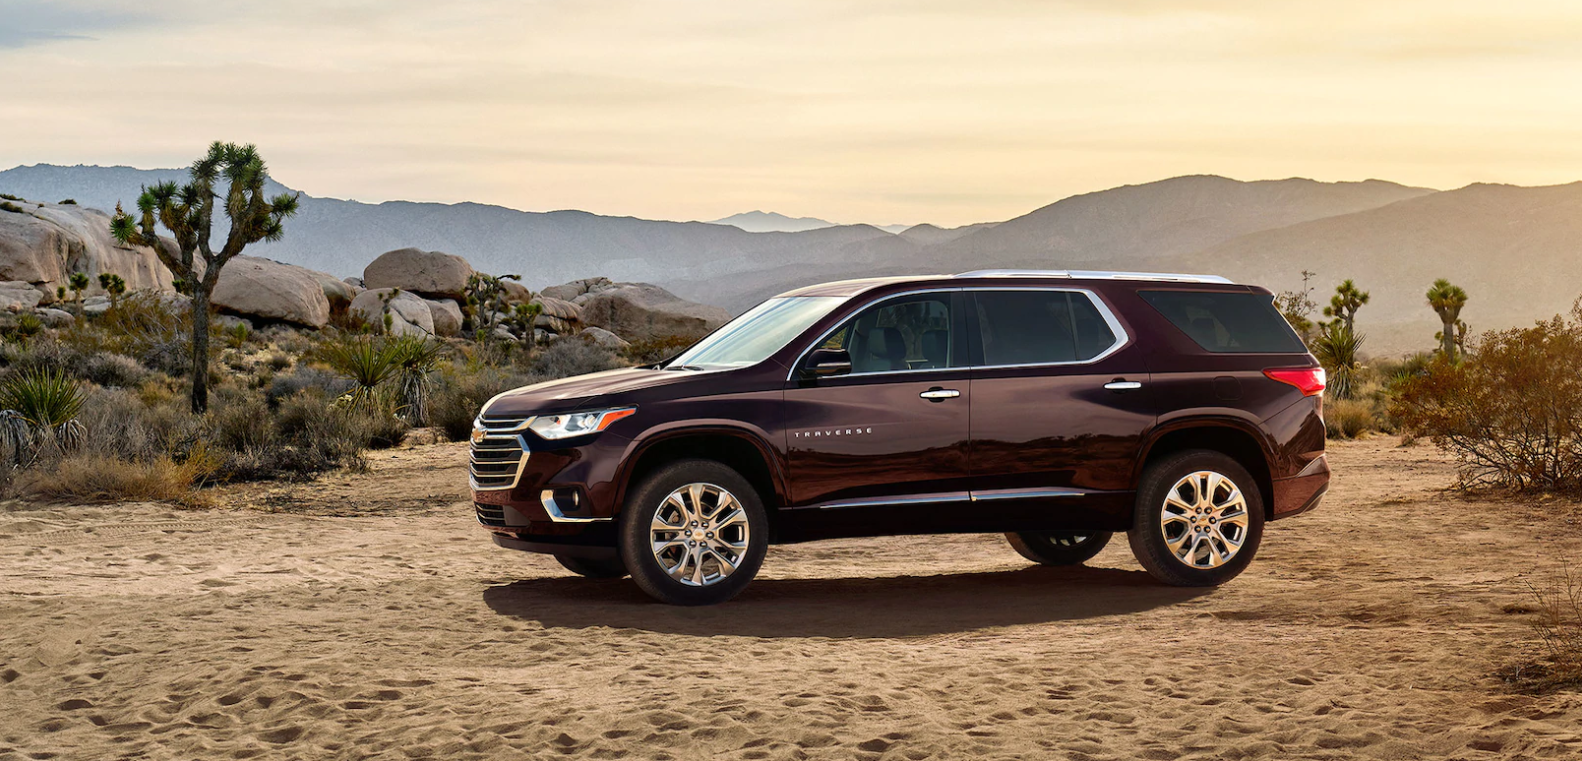 Chevrolet Lease Deals >> Chevrolet Traverse Lease Deals Price Grand Rapids Mi